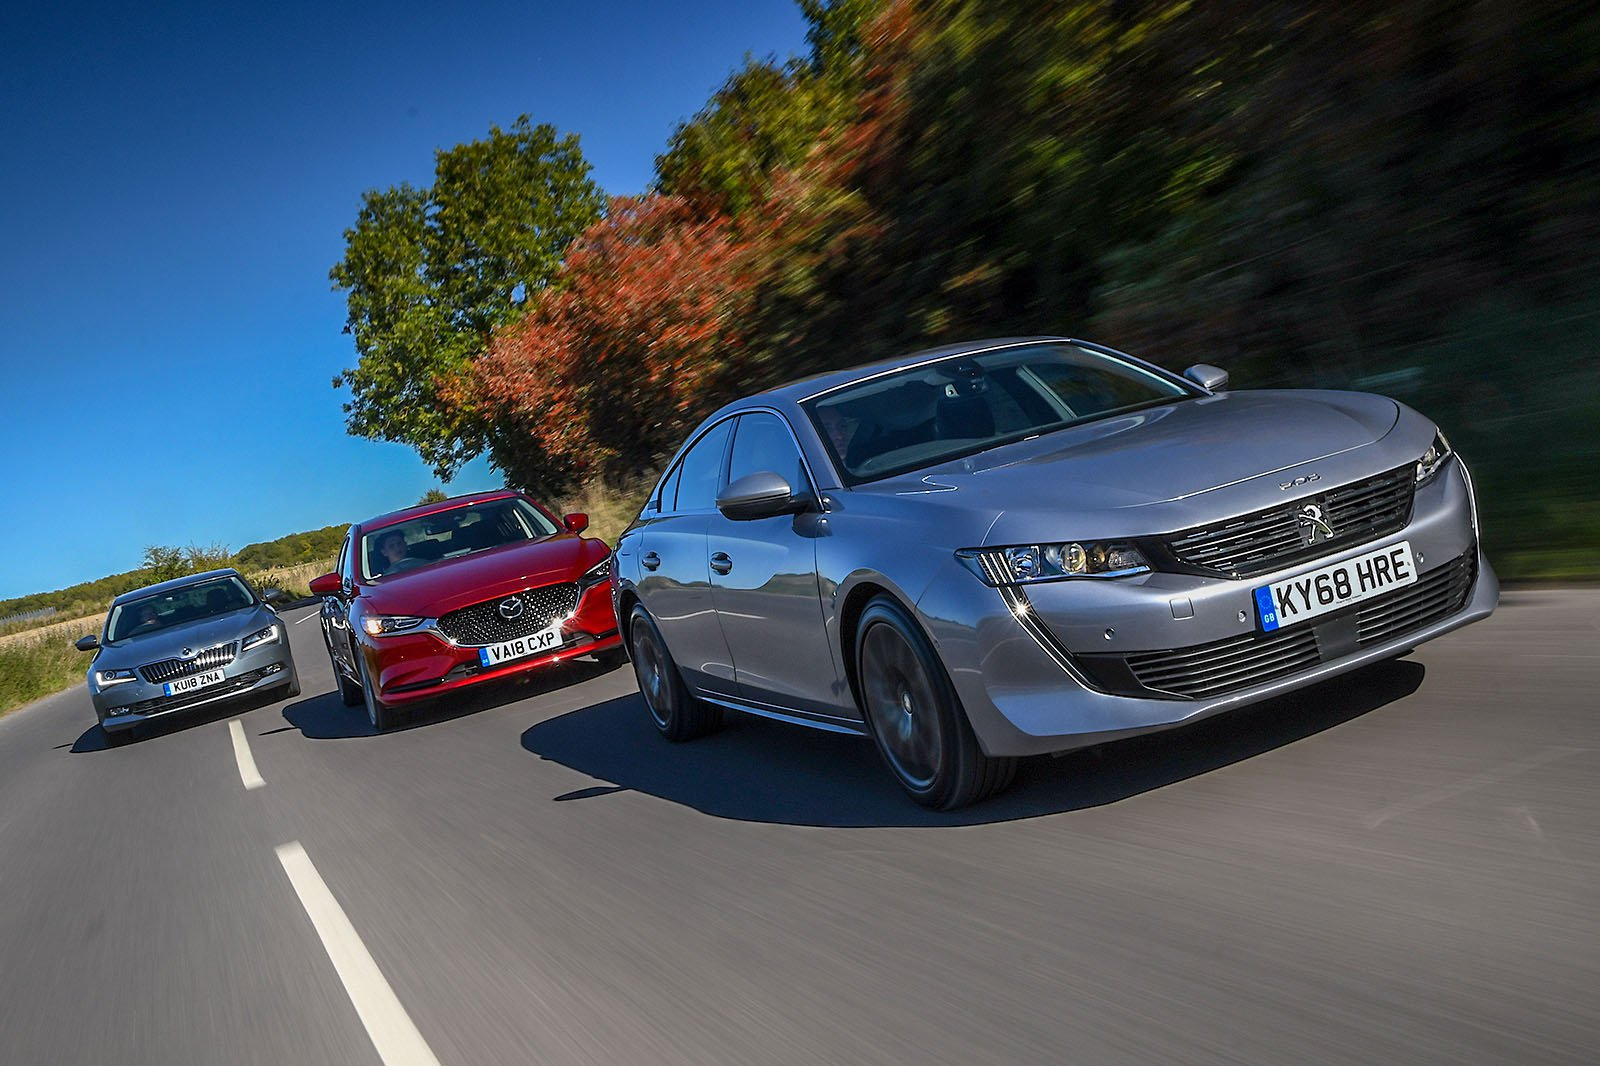 New Peugeot 508 vs Mazda 6 vs Skoda Superb